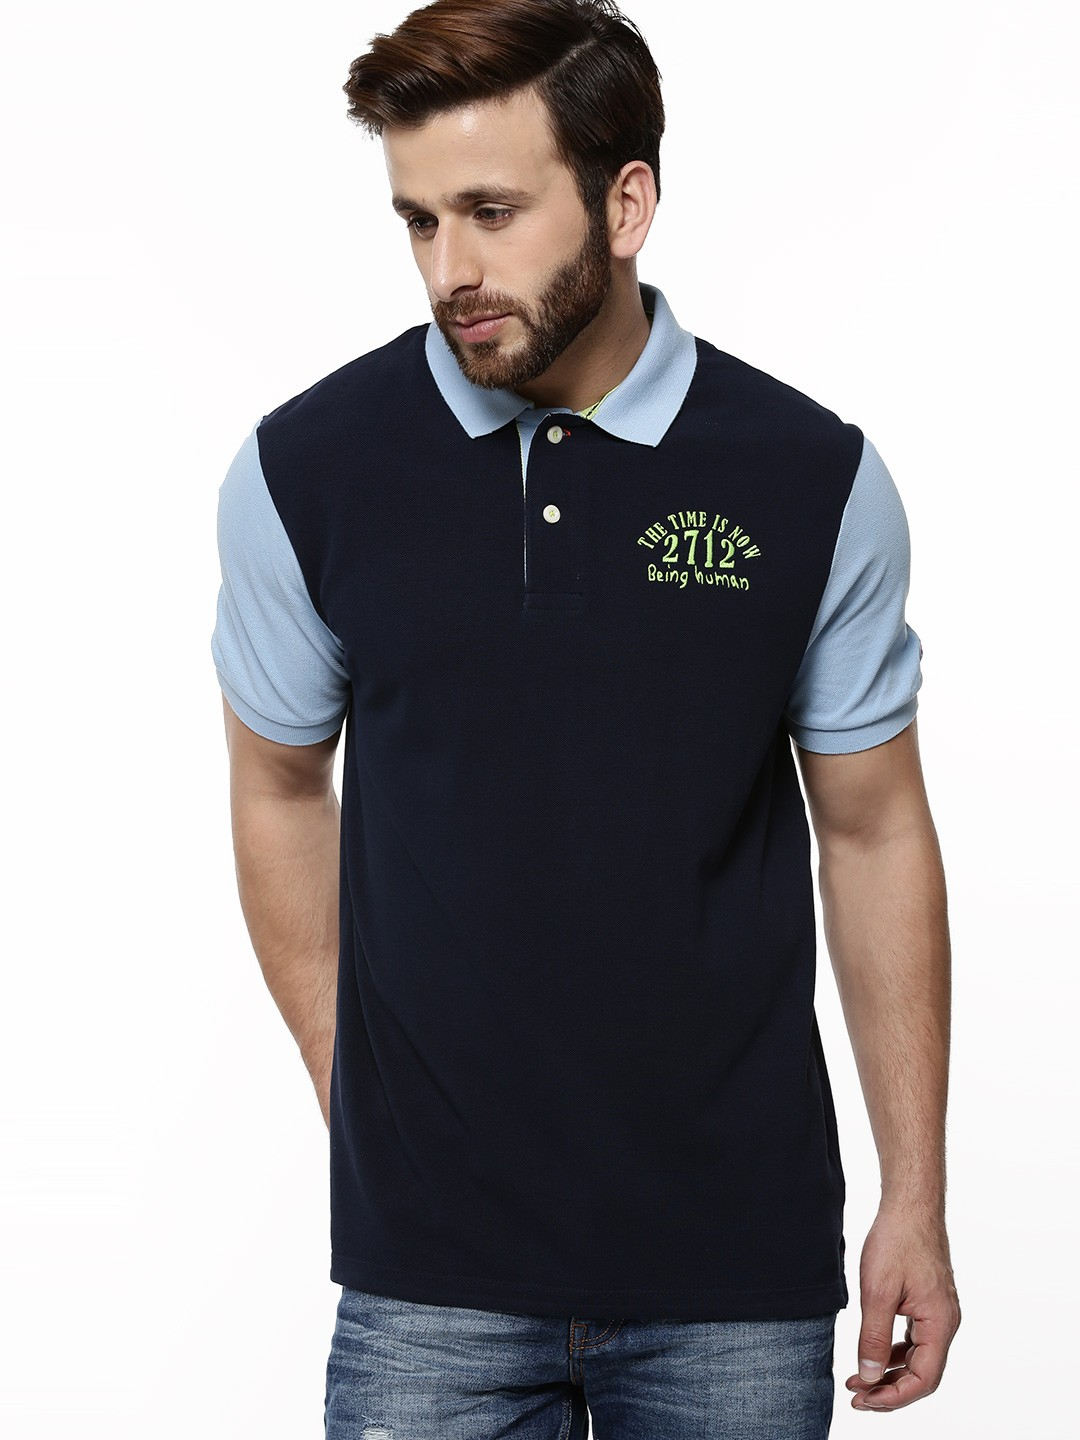 Buy being human contrast sleeves polo shirt for men men for Being human t shirts buy online india